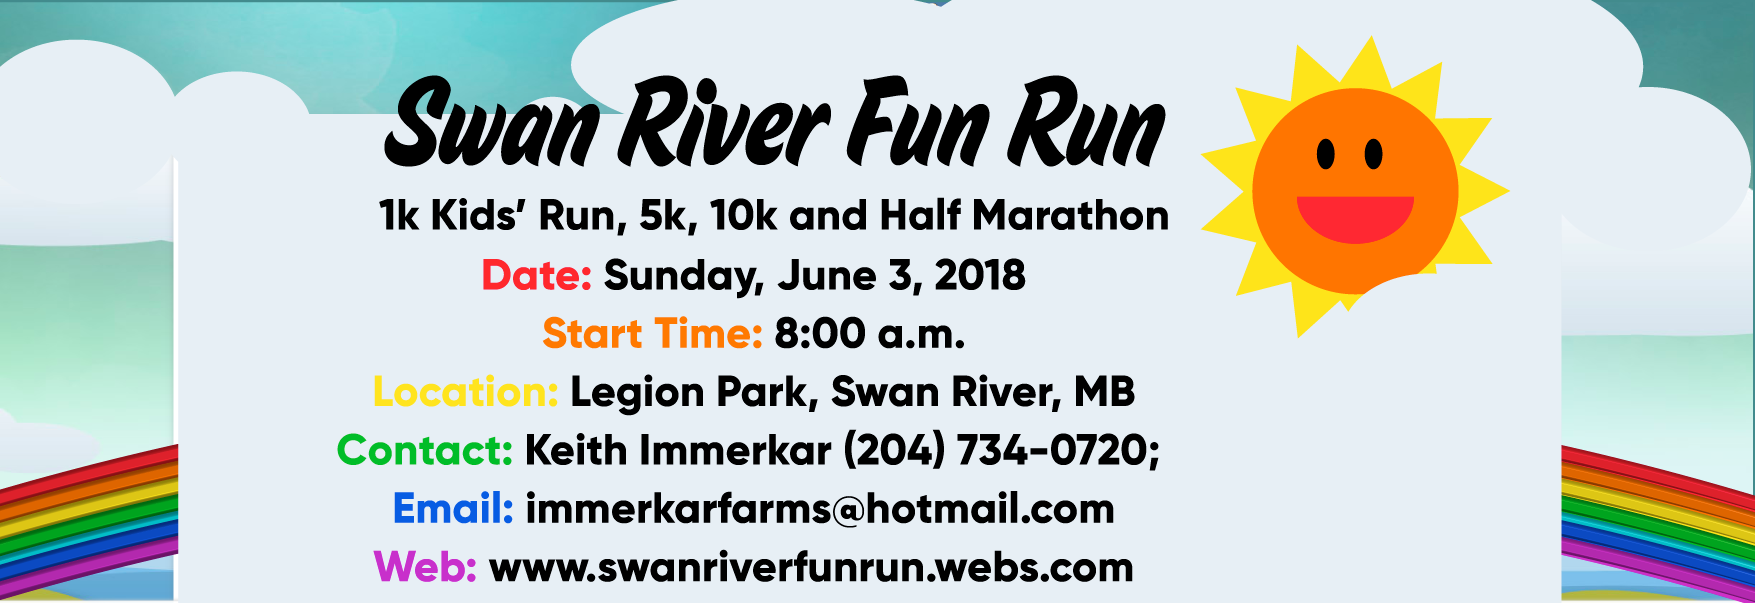 http://mraweb.ca/events/swan-river-fun-run/